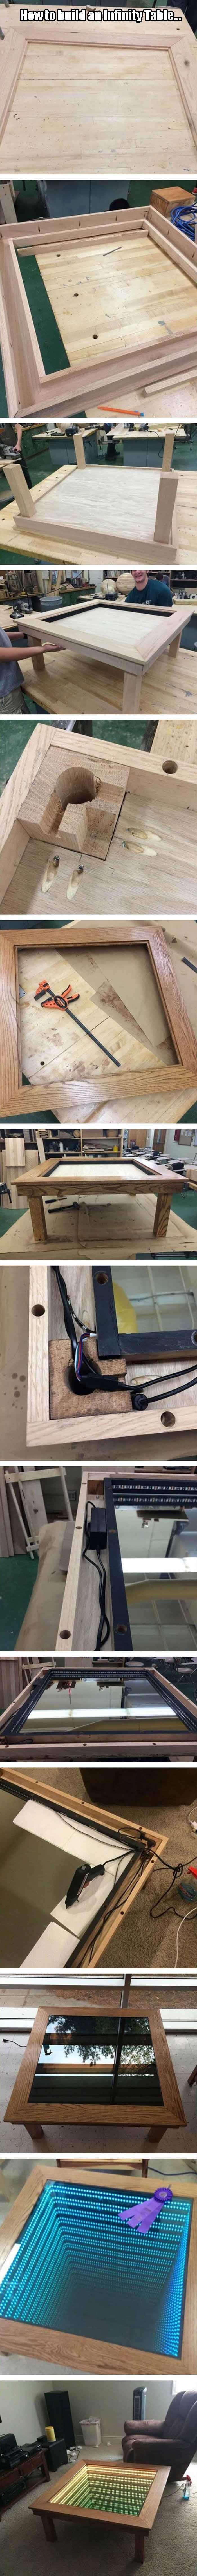 How To Build An Infinity Table  14 Pics